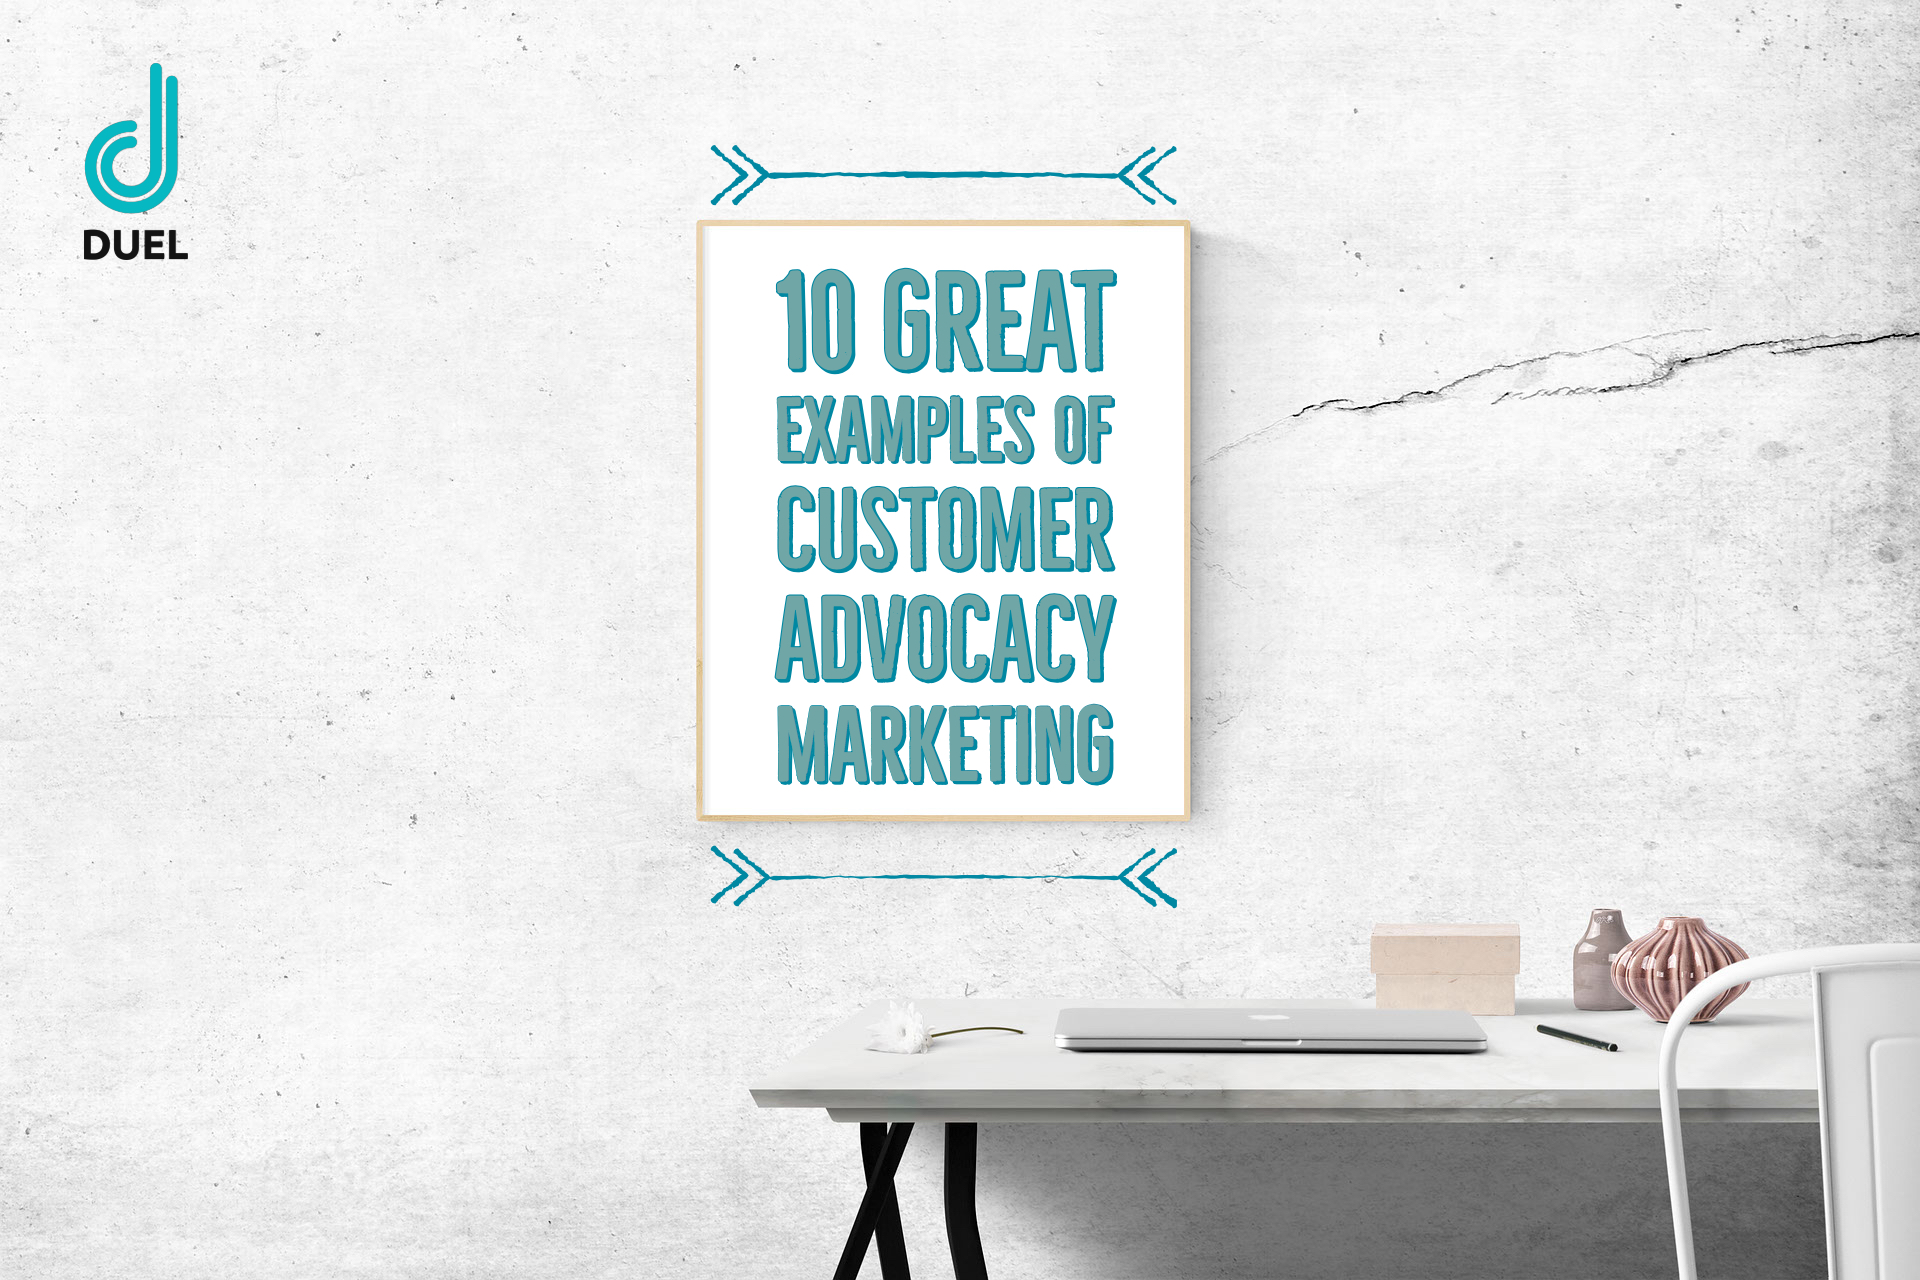 9-Great-Examples-of-Customer-Advocacy-Marketing-3